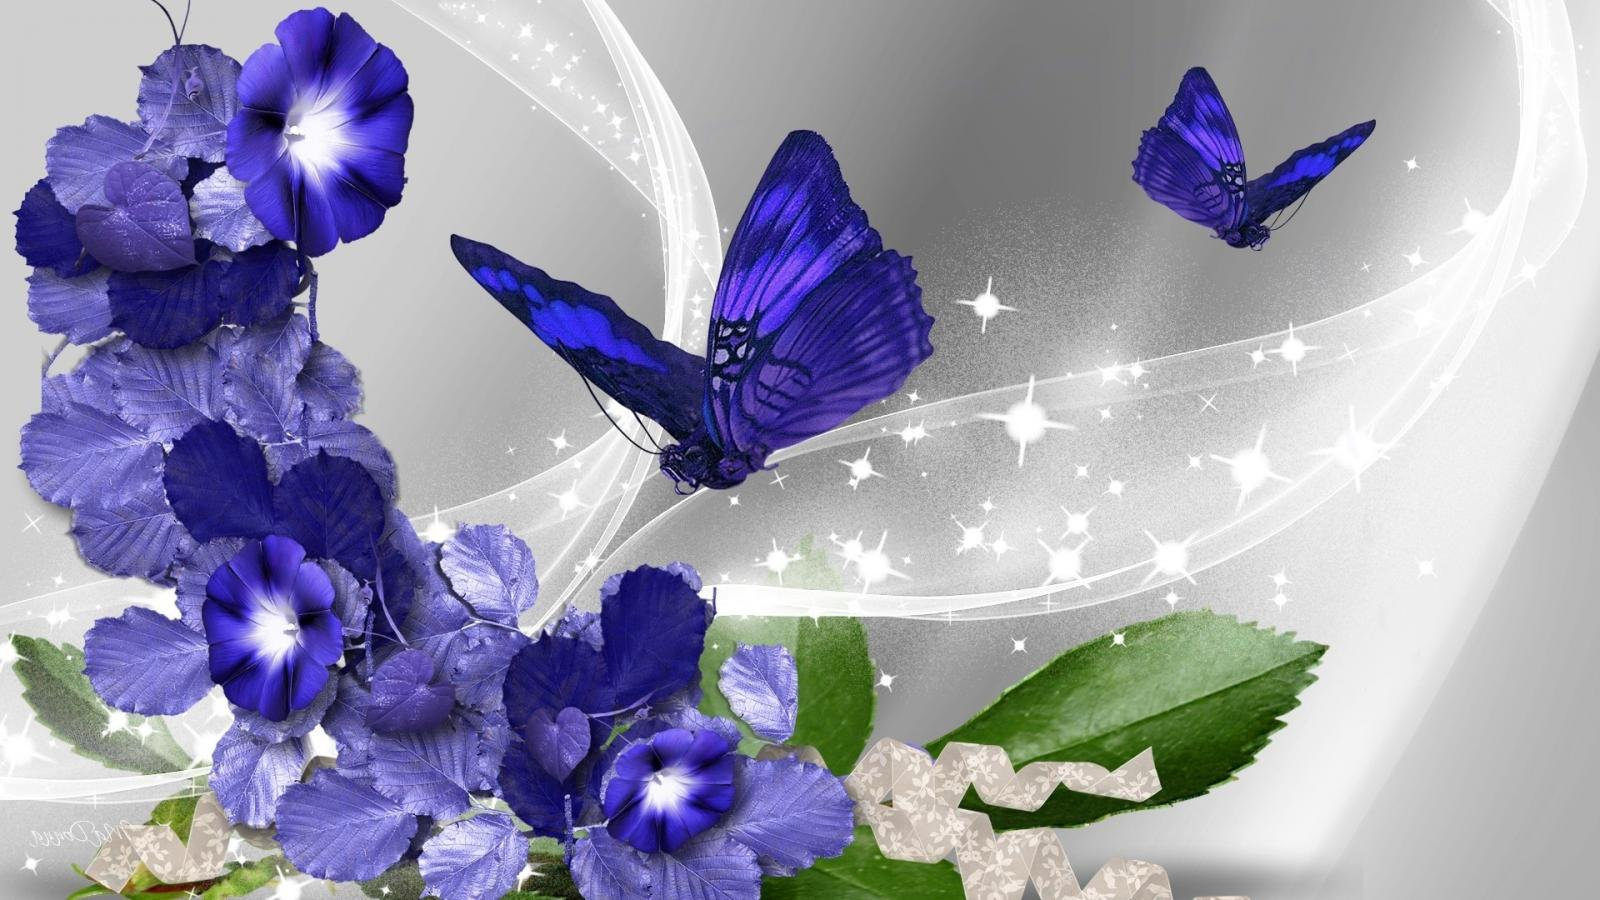 Free Desktop Animated Wallpaper Download Pictures Of Blue Flowers And Butterflies With Abstract